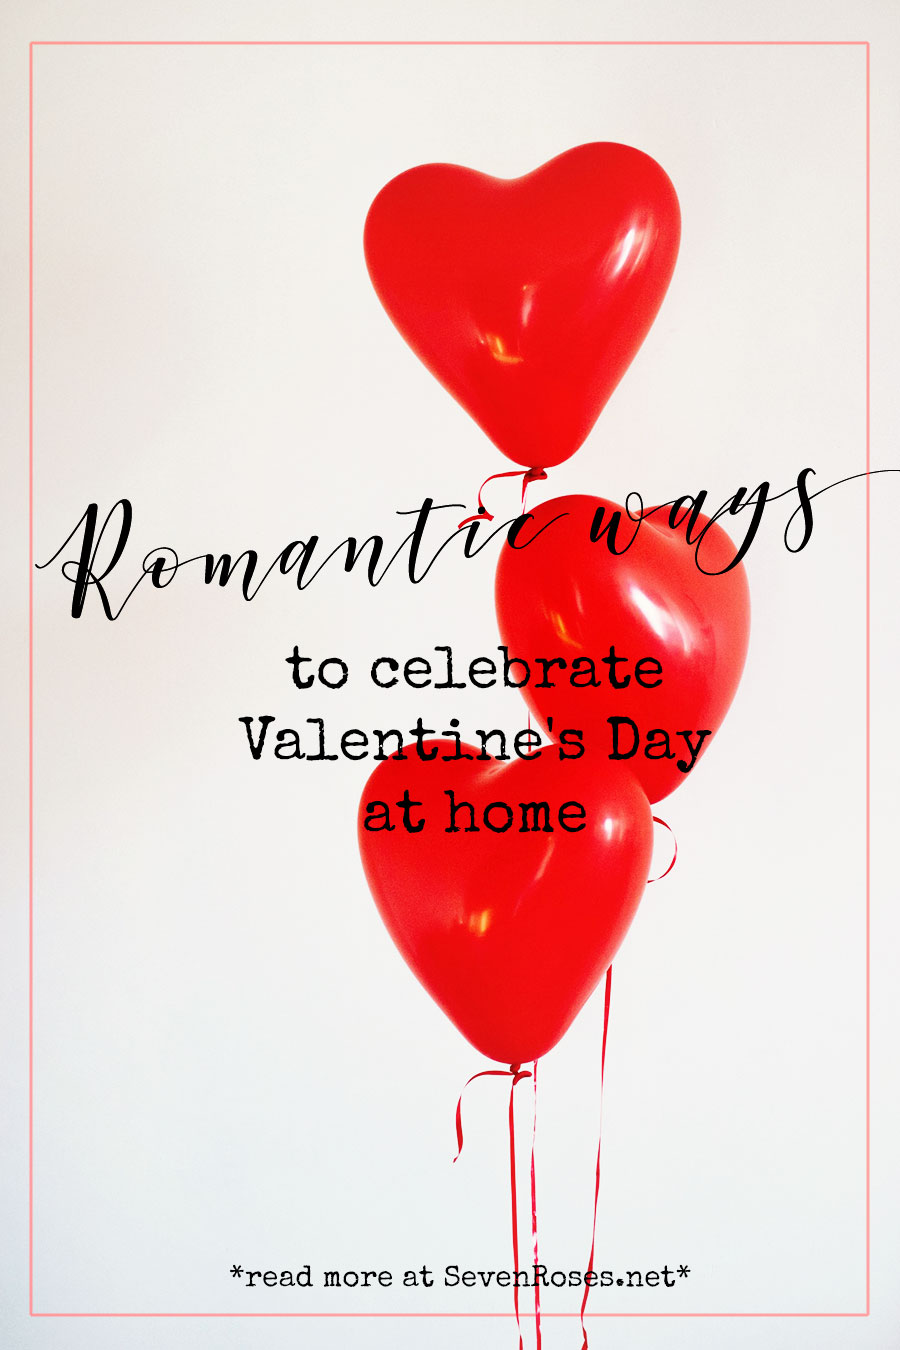 Romantic Ways to Celebrate Valentine's Day at Home